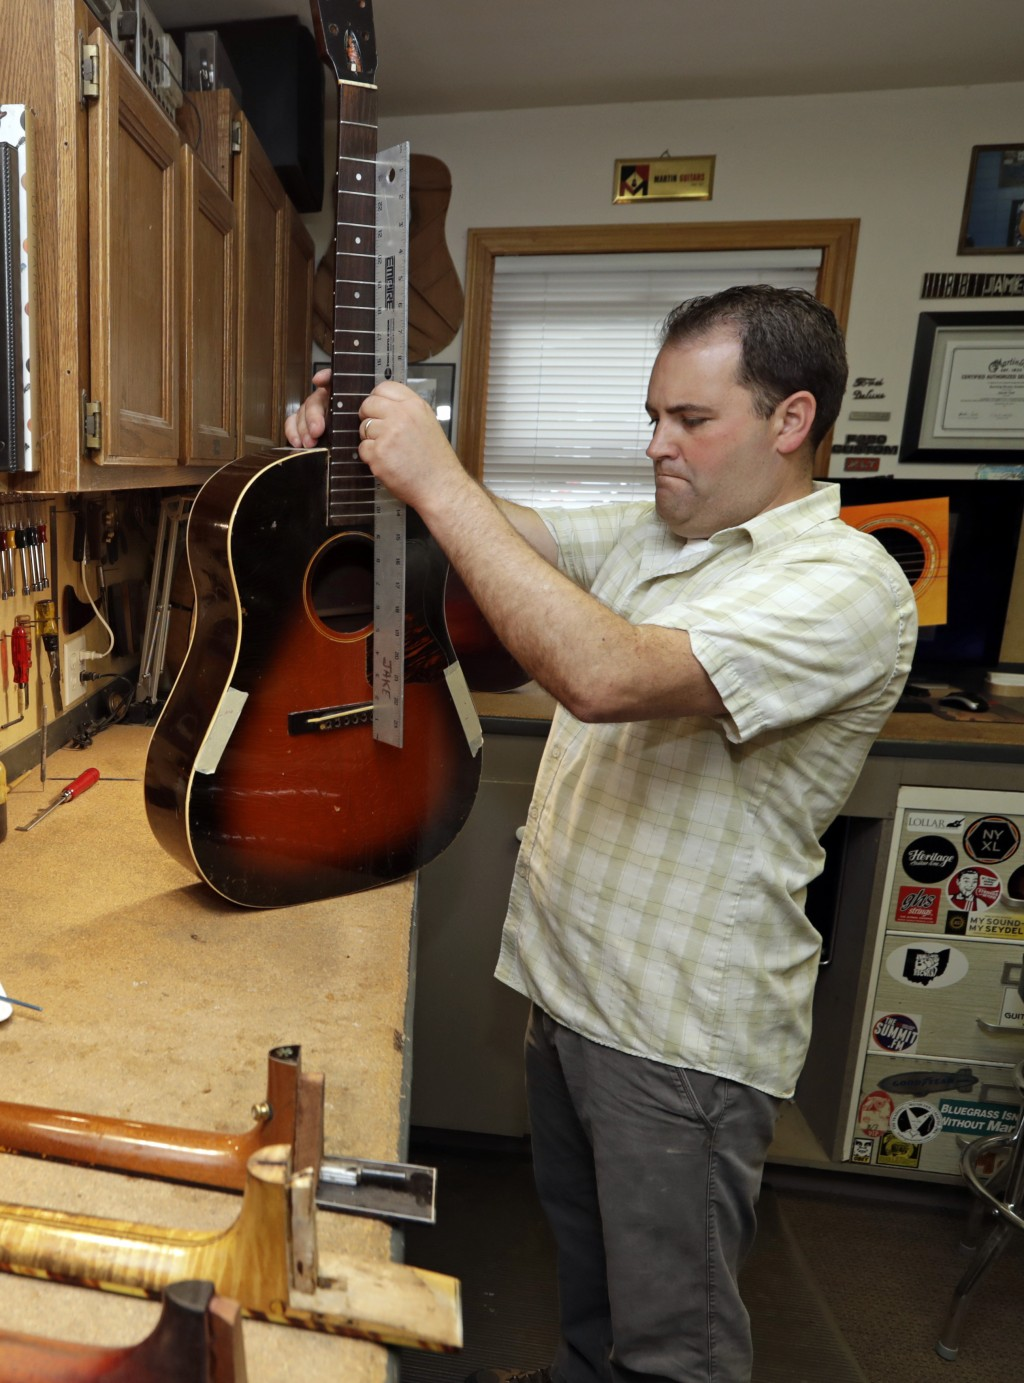 Jacob Tuel, owner of Burning River Guitars, repairs the neck on a guitar, Monday, June 10, 2019, in Akron, Ohio. Tuel named his guitar shop after the